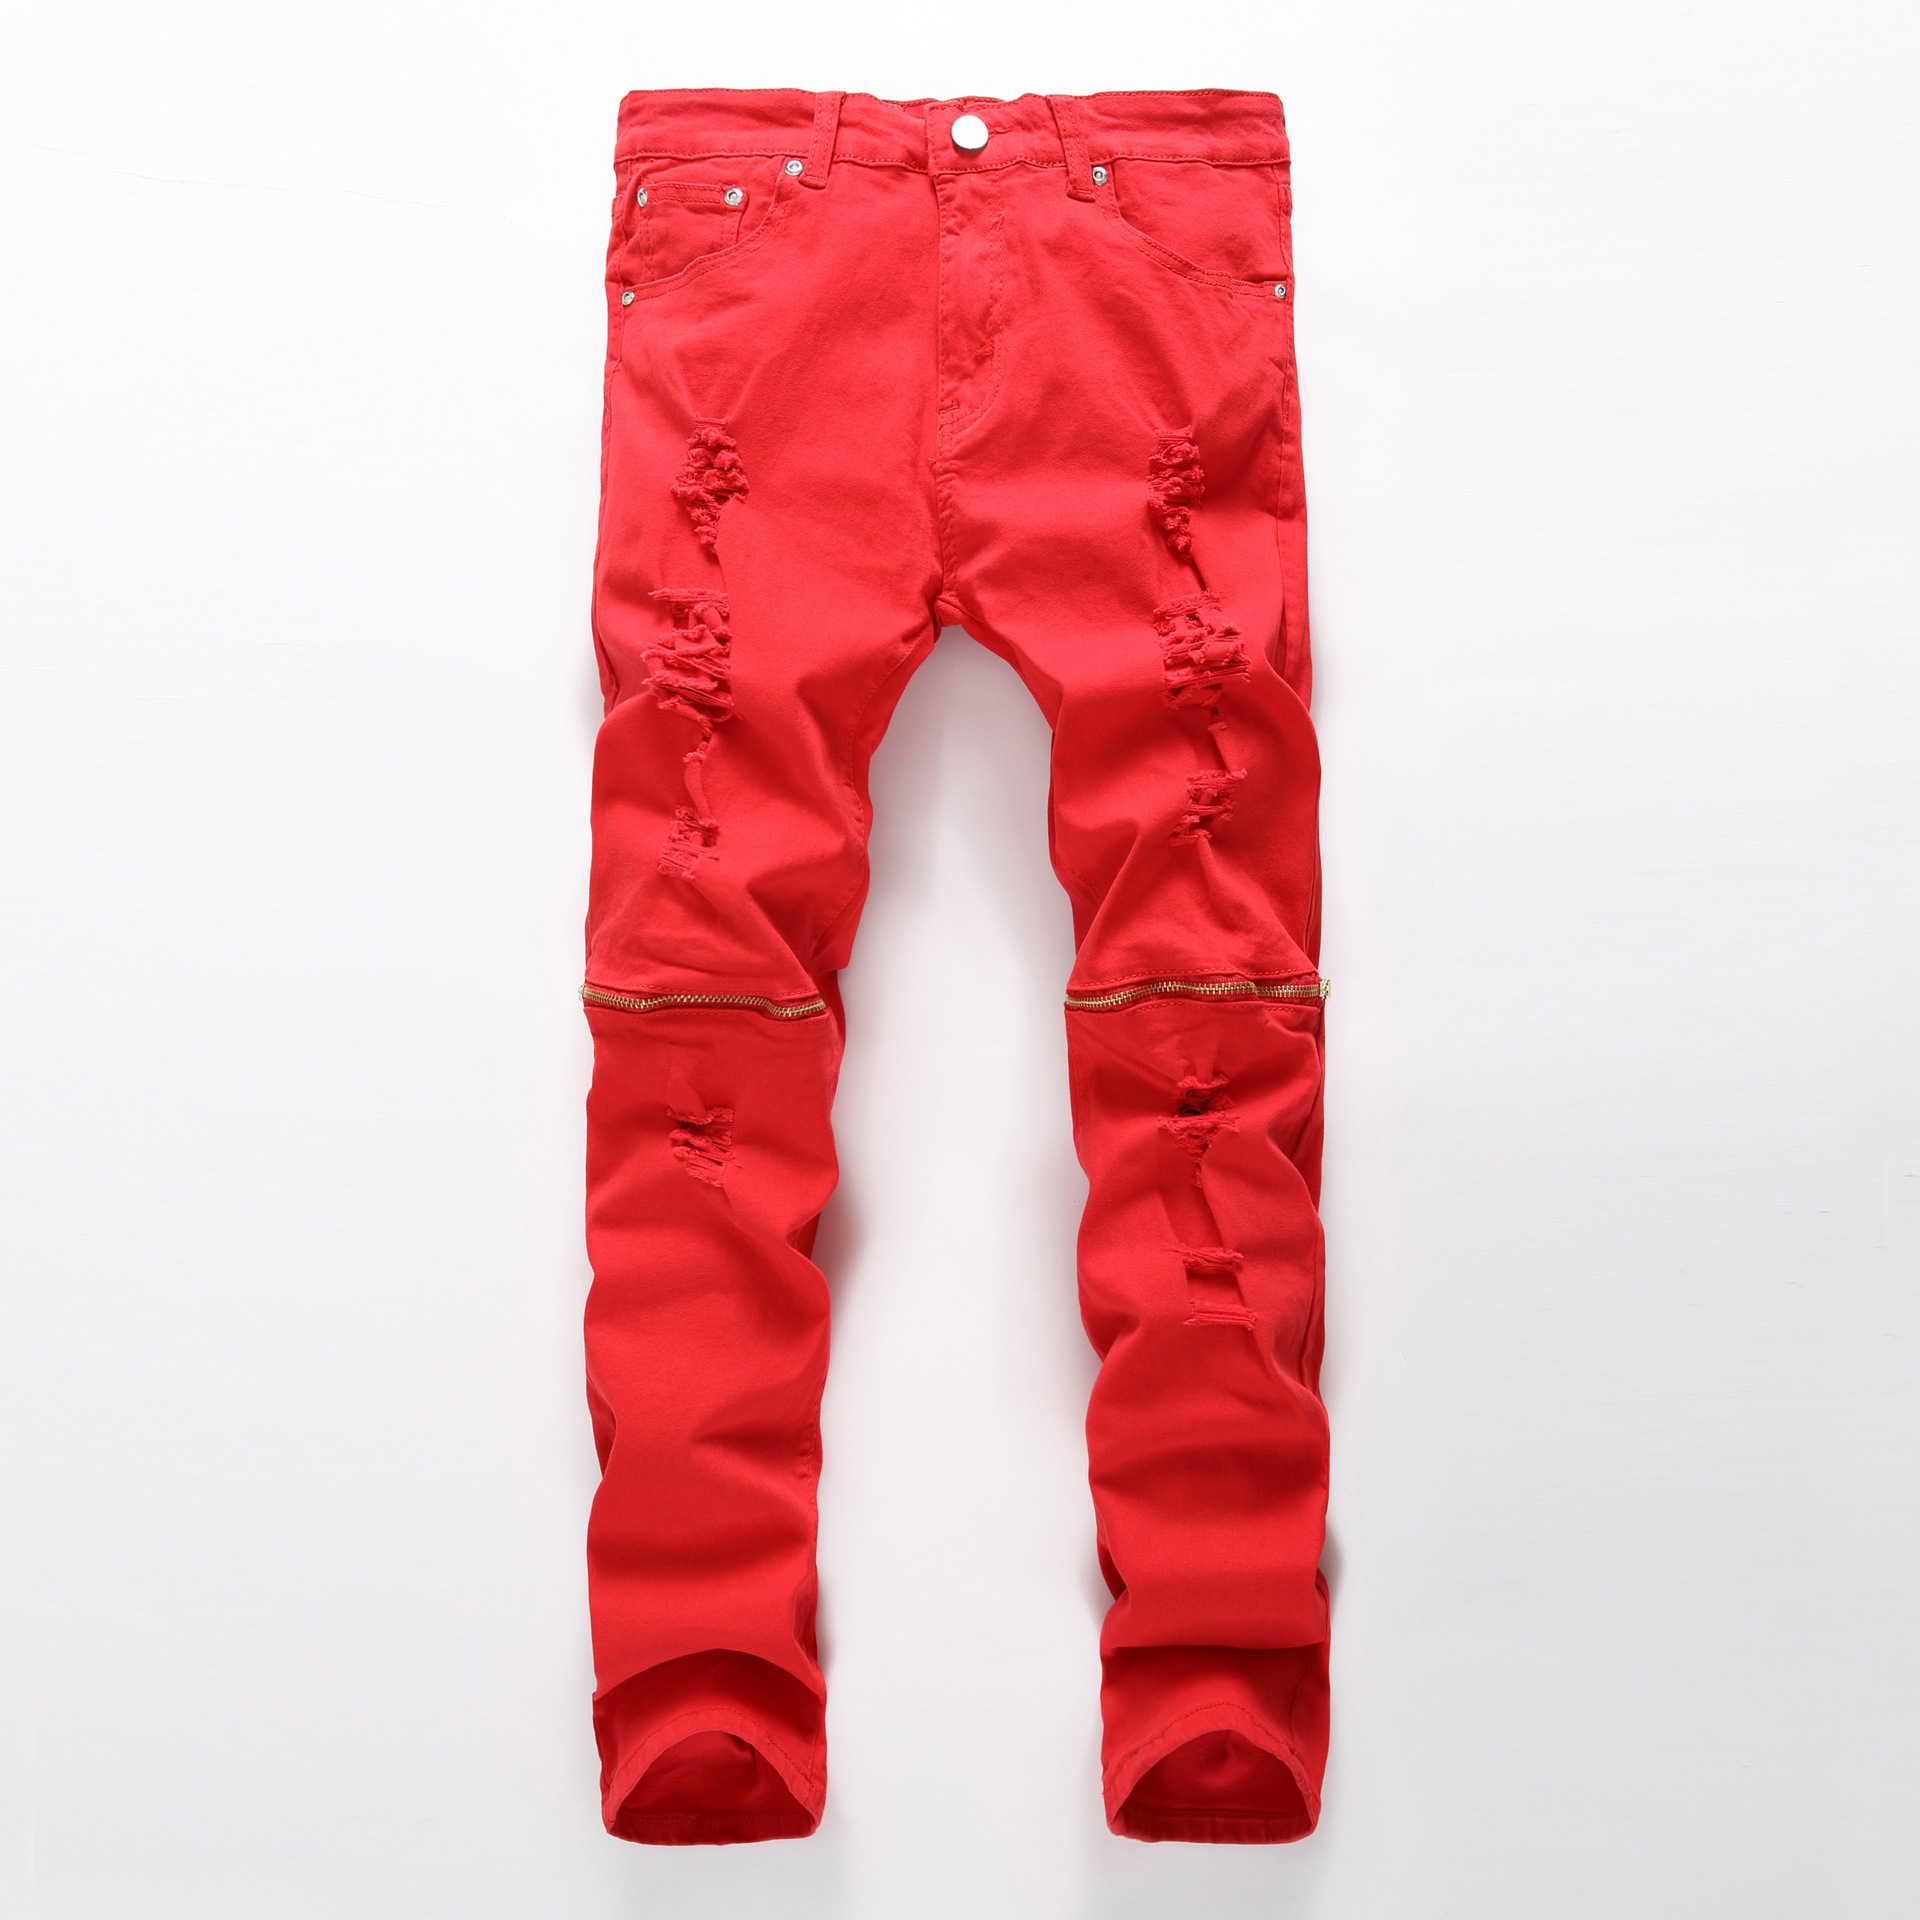 Online Get Cheap Skinny Jeans Red -Aliexpress.com | Alibaba Group